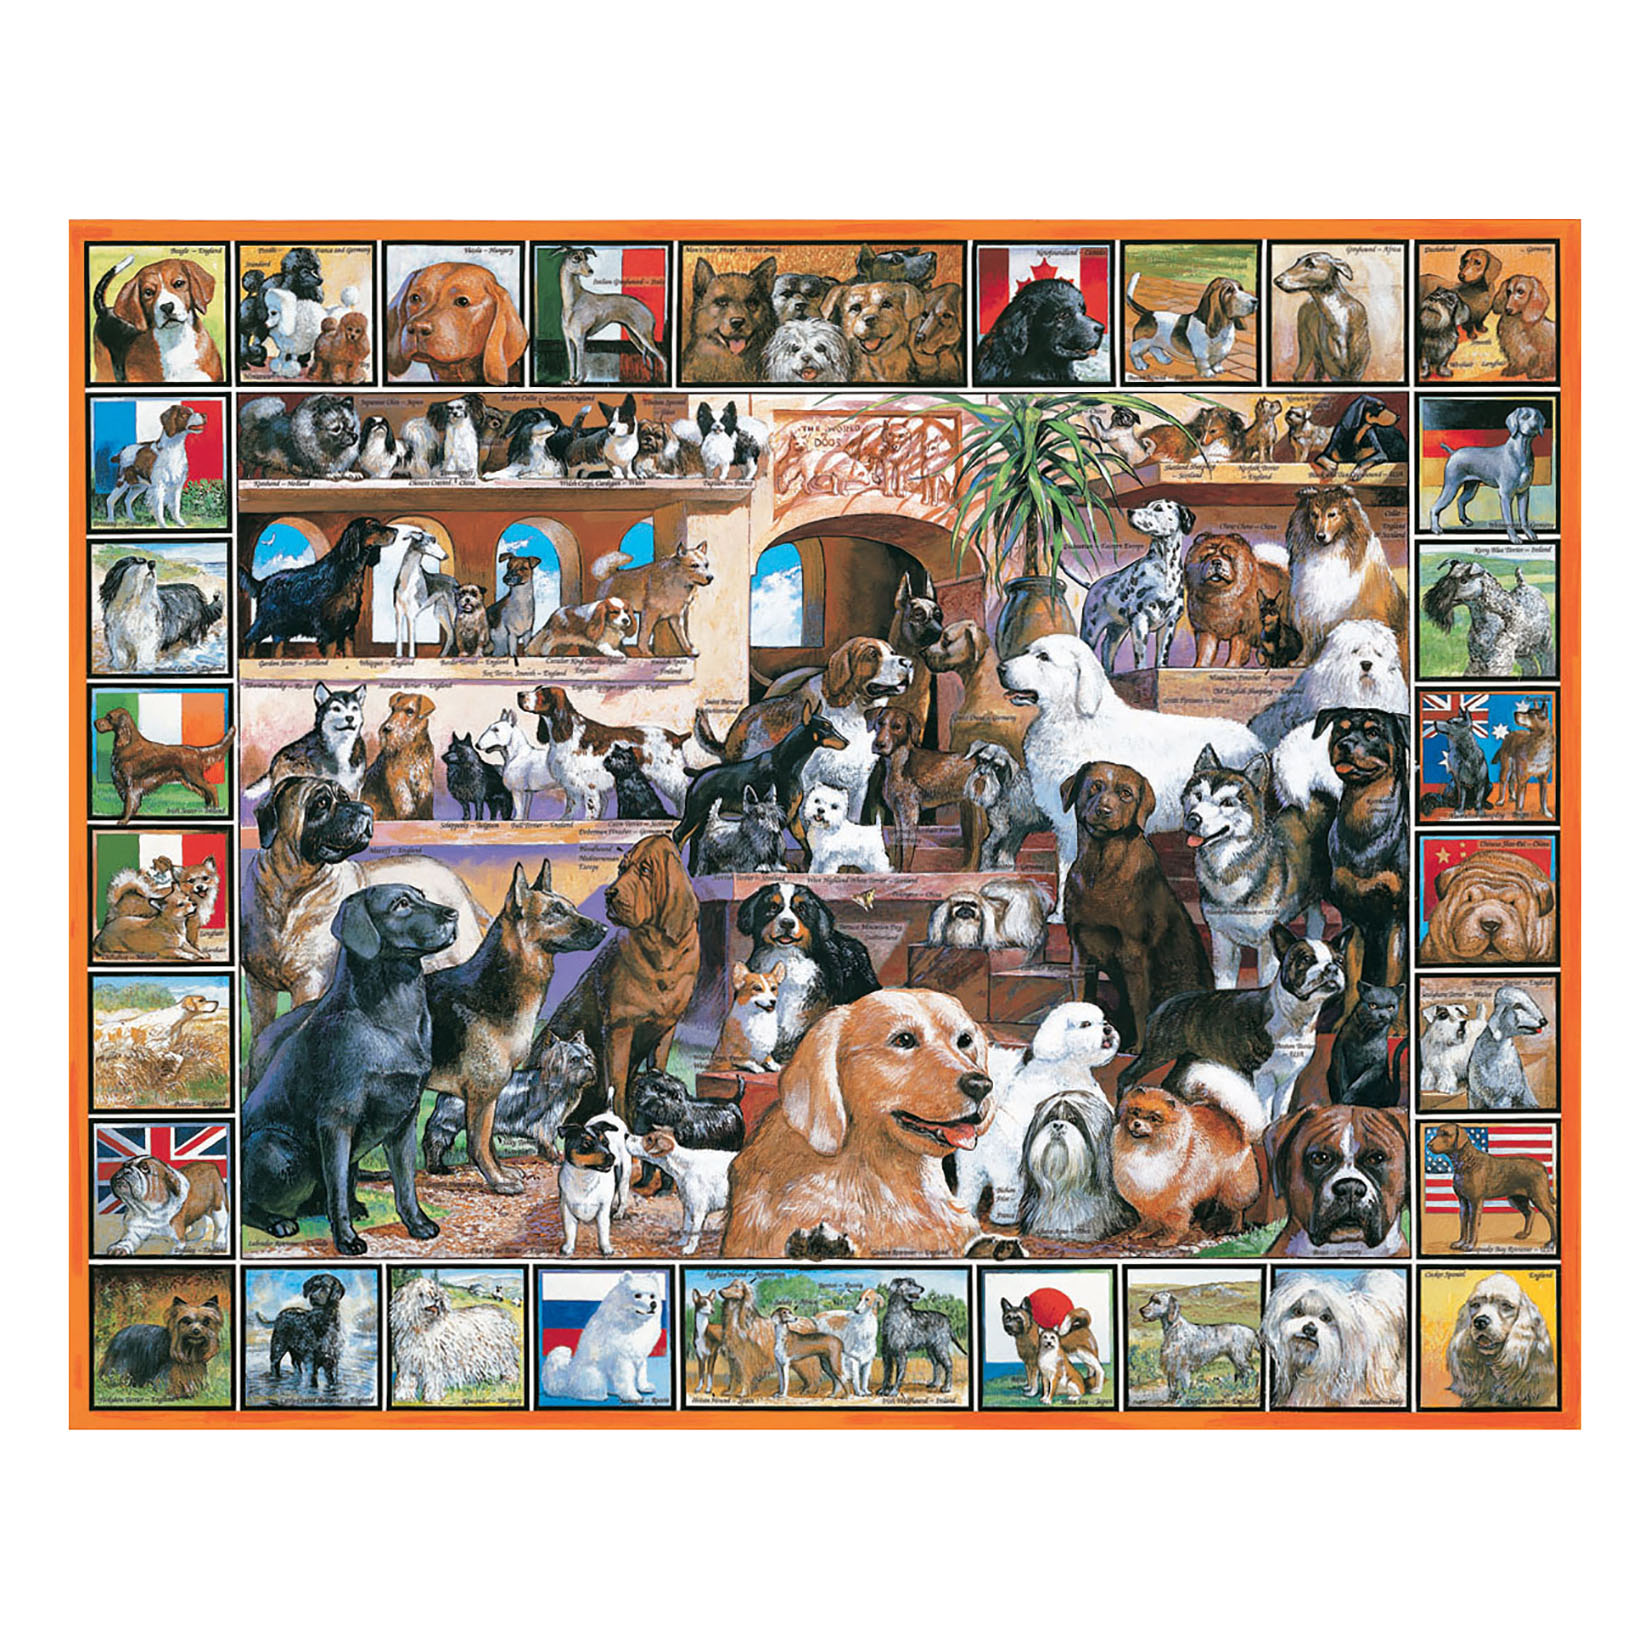 White Mountain Puzzles World of Dogs 1000 Piece Jigsaw Puzzle by White Mountain Puzzles